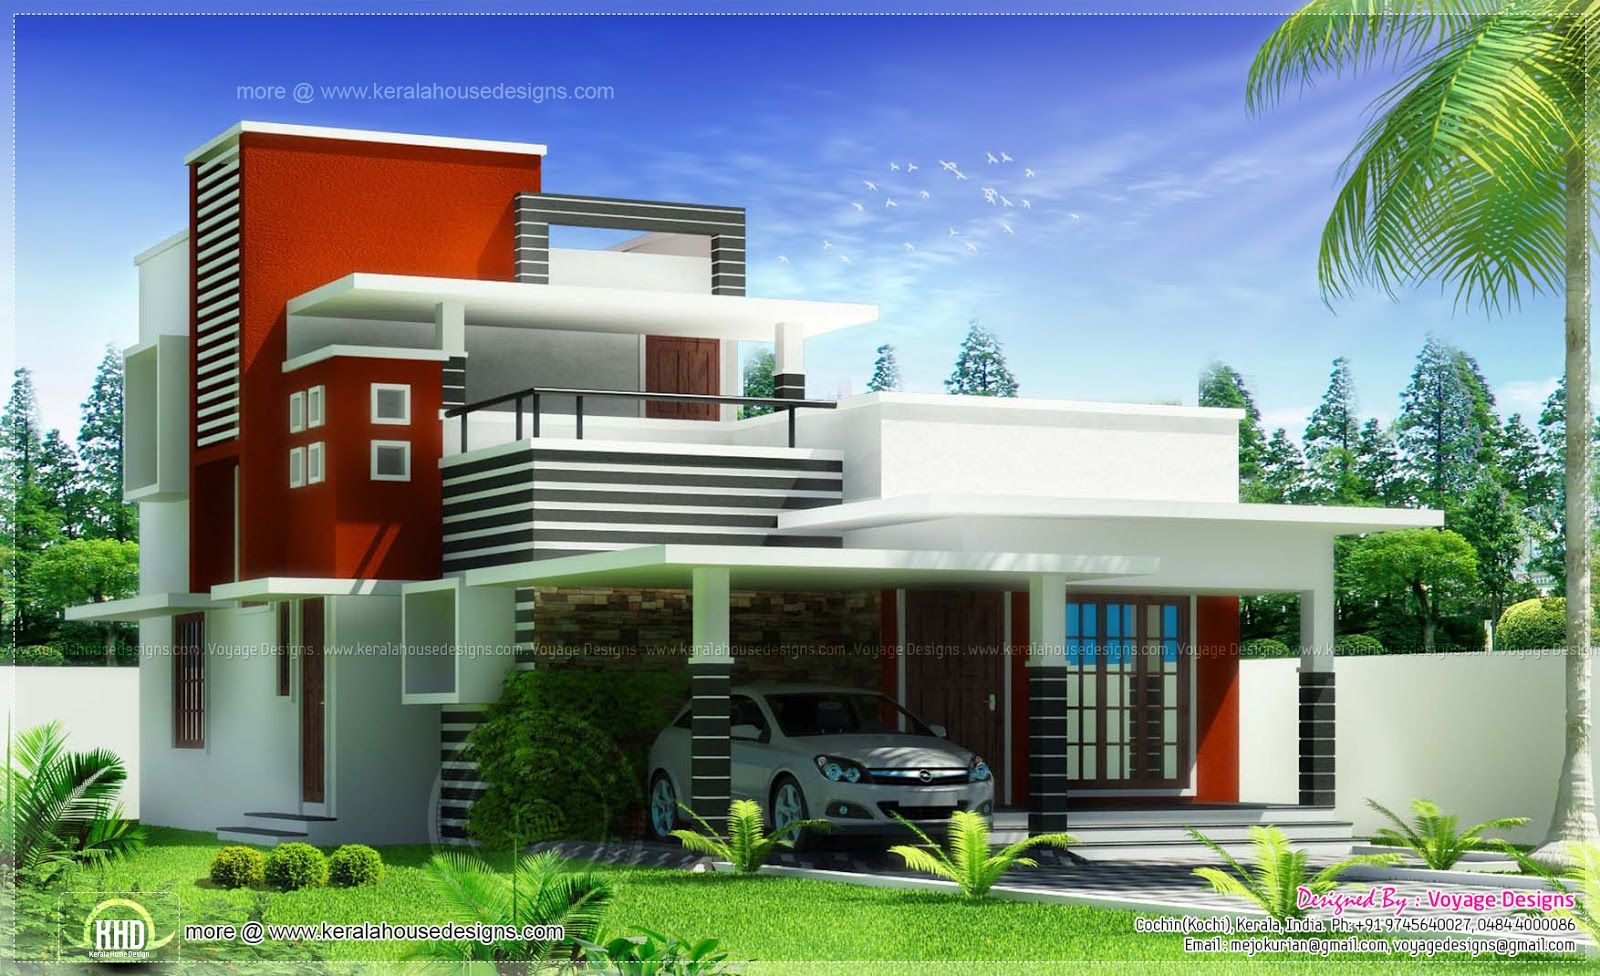 Kerala house designs | Architecture | Pinterest | Kerala, House and on